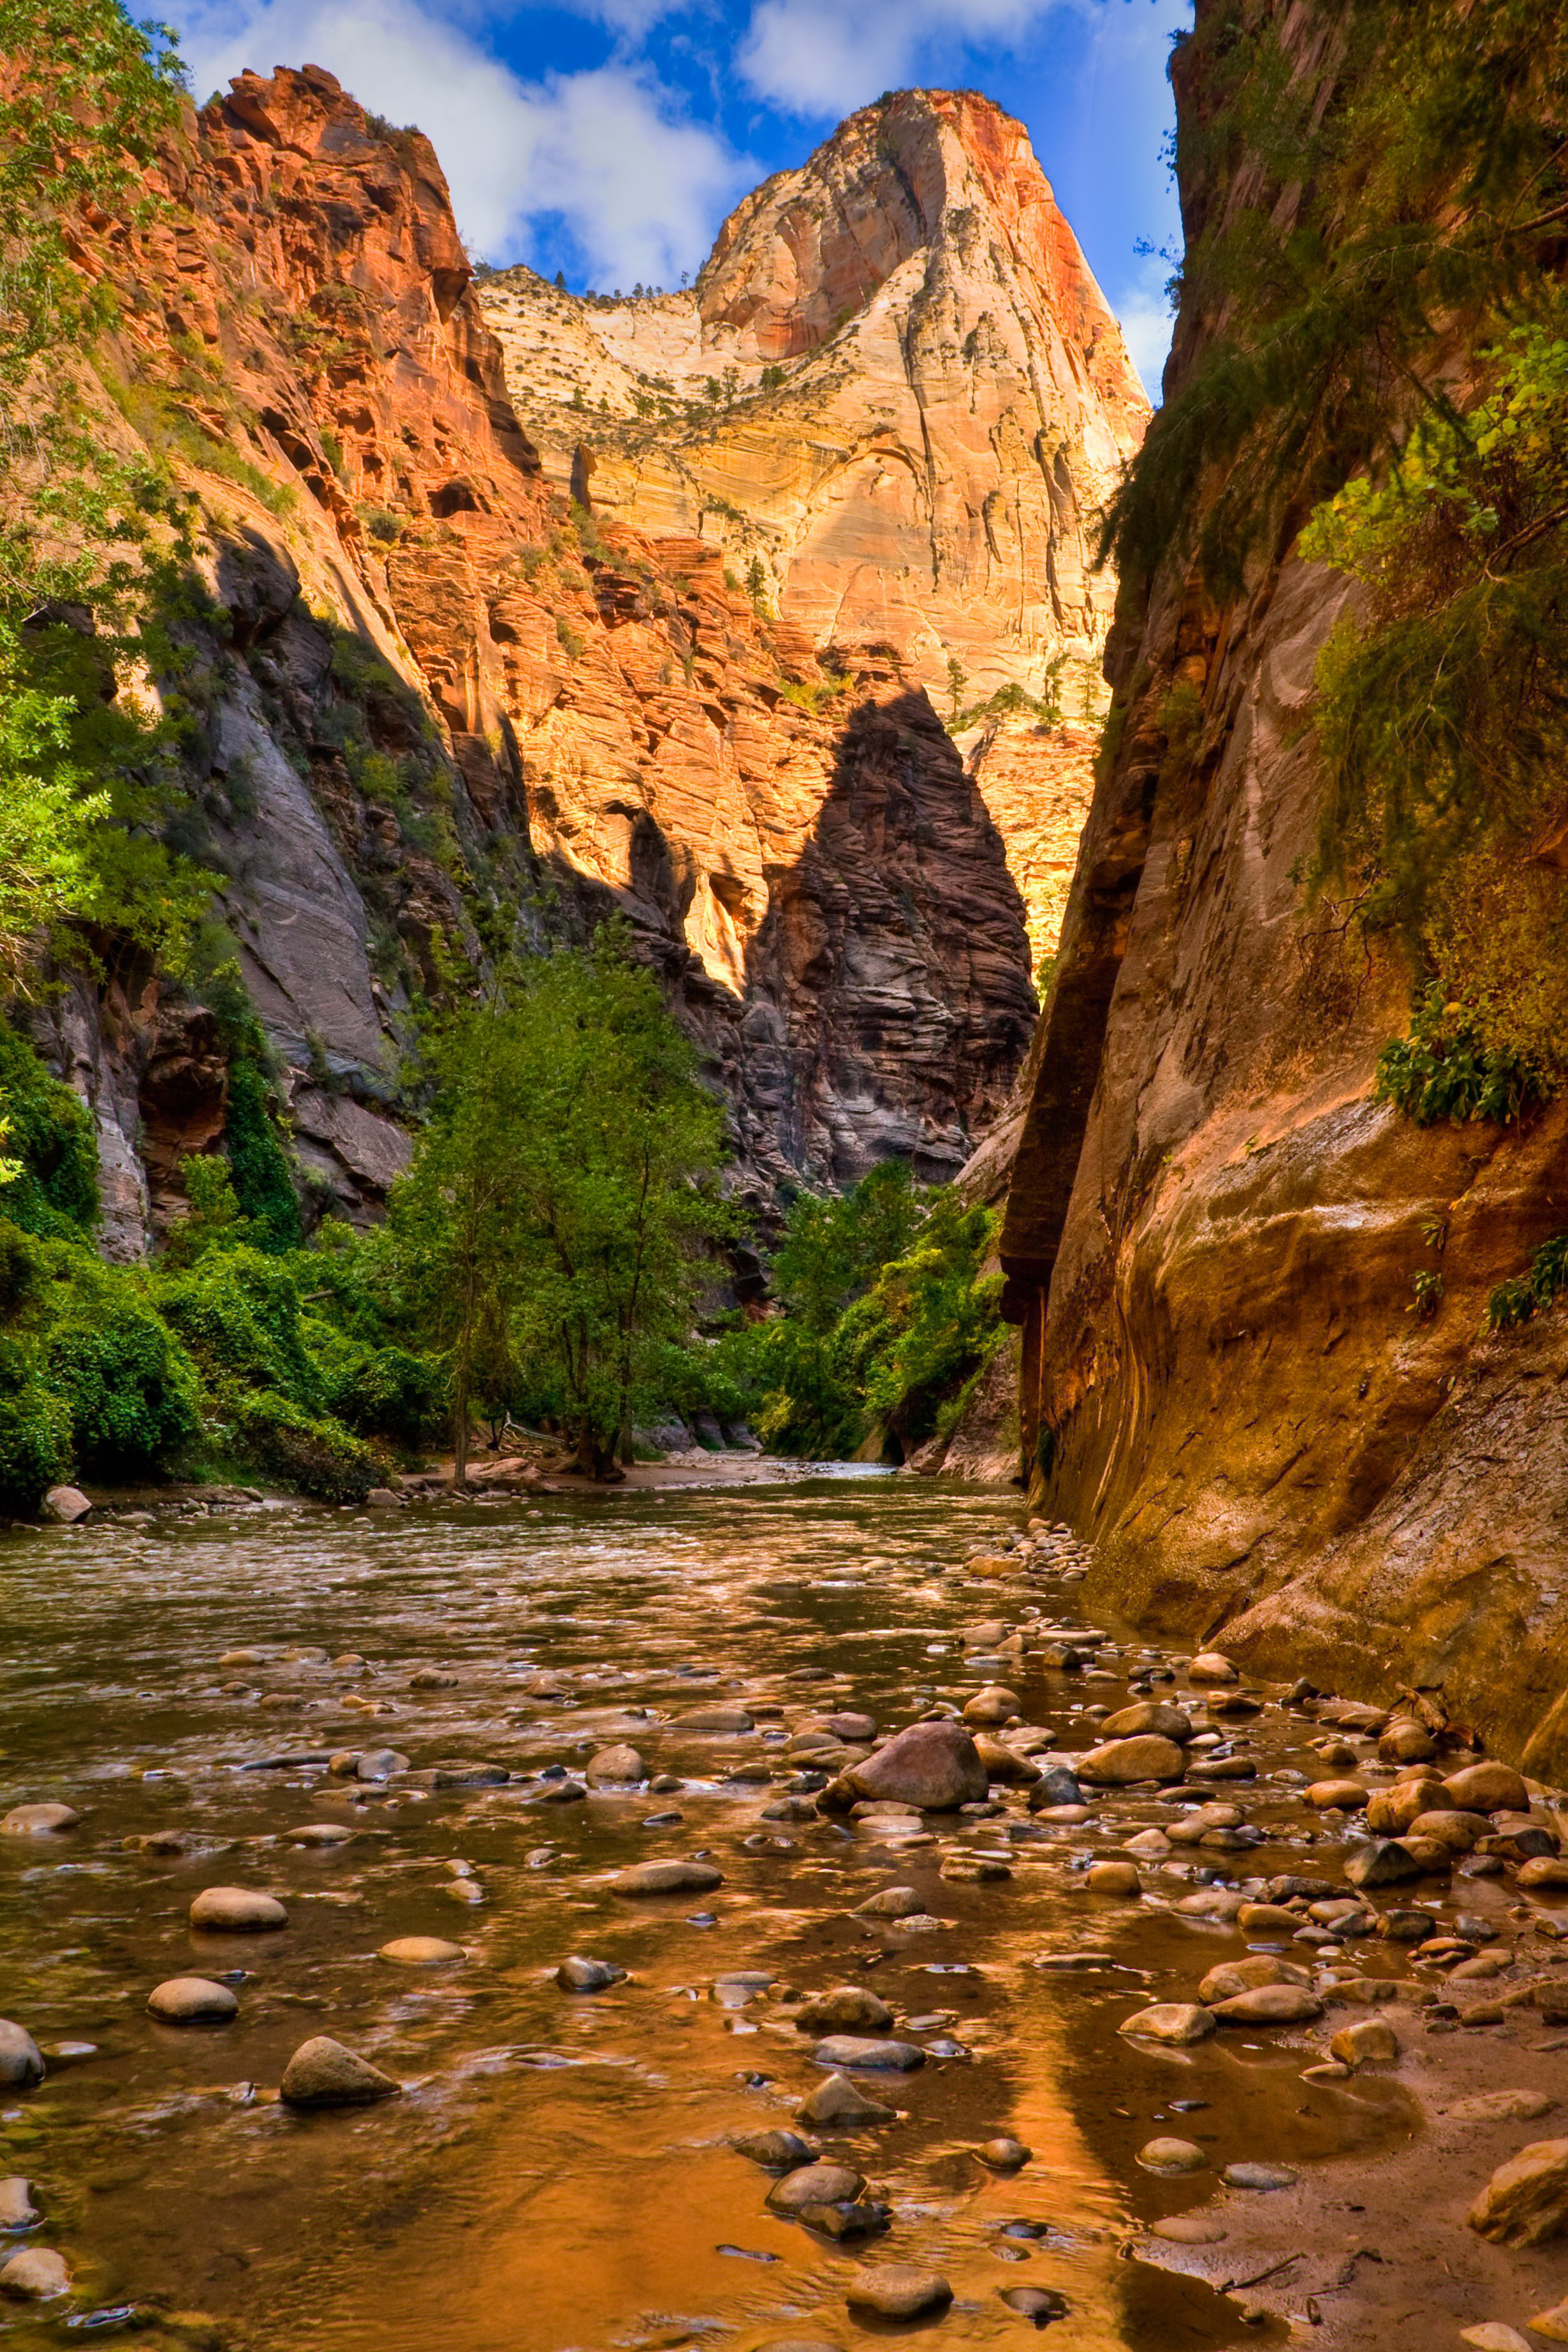 Majestic Zion National Park: Angels Landing, The Subway, Cliffs ...